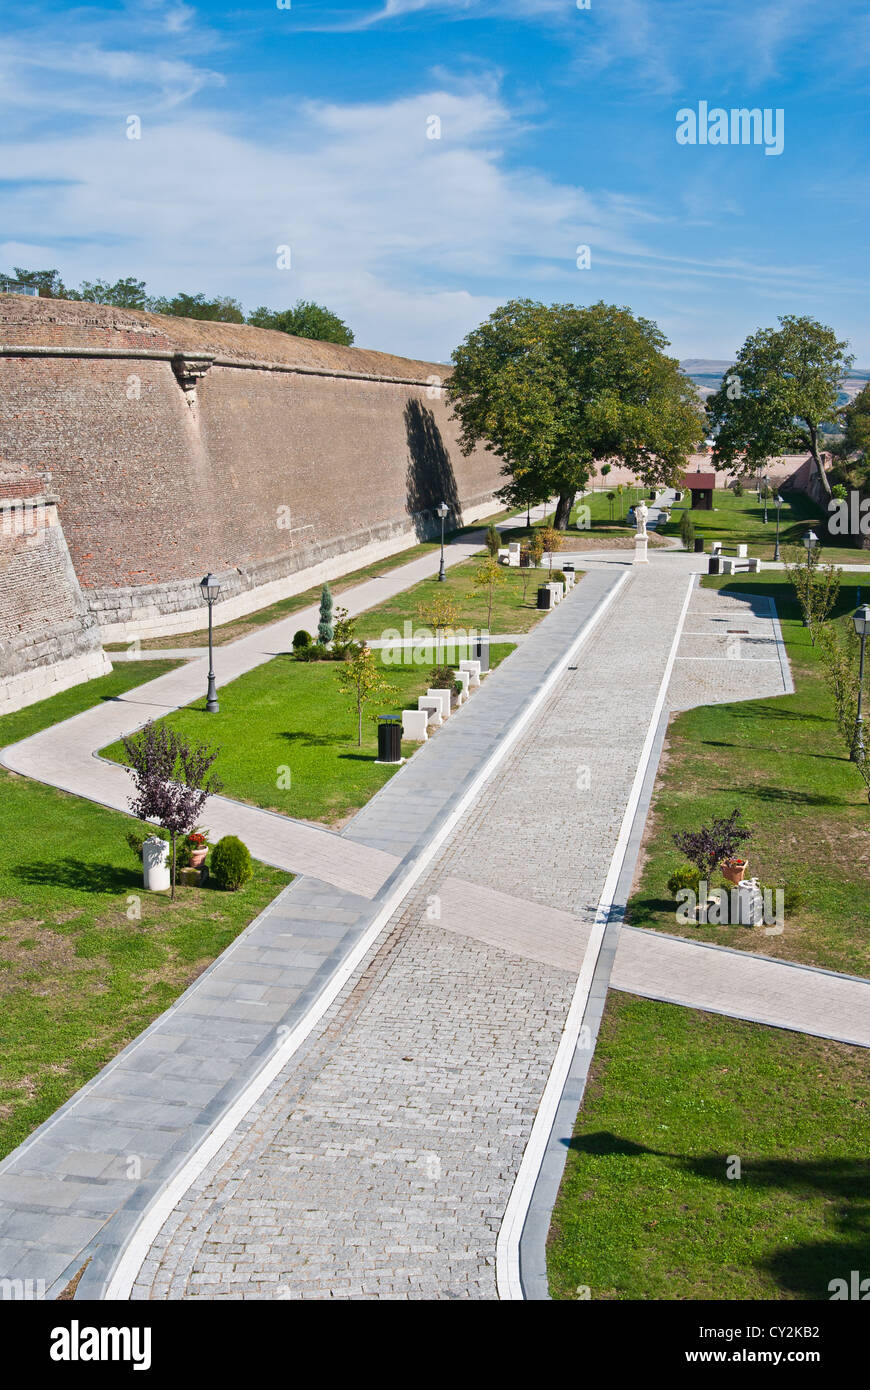 Bastion Citadel of Alba Iulia - Stock Image